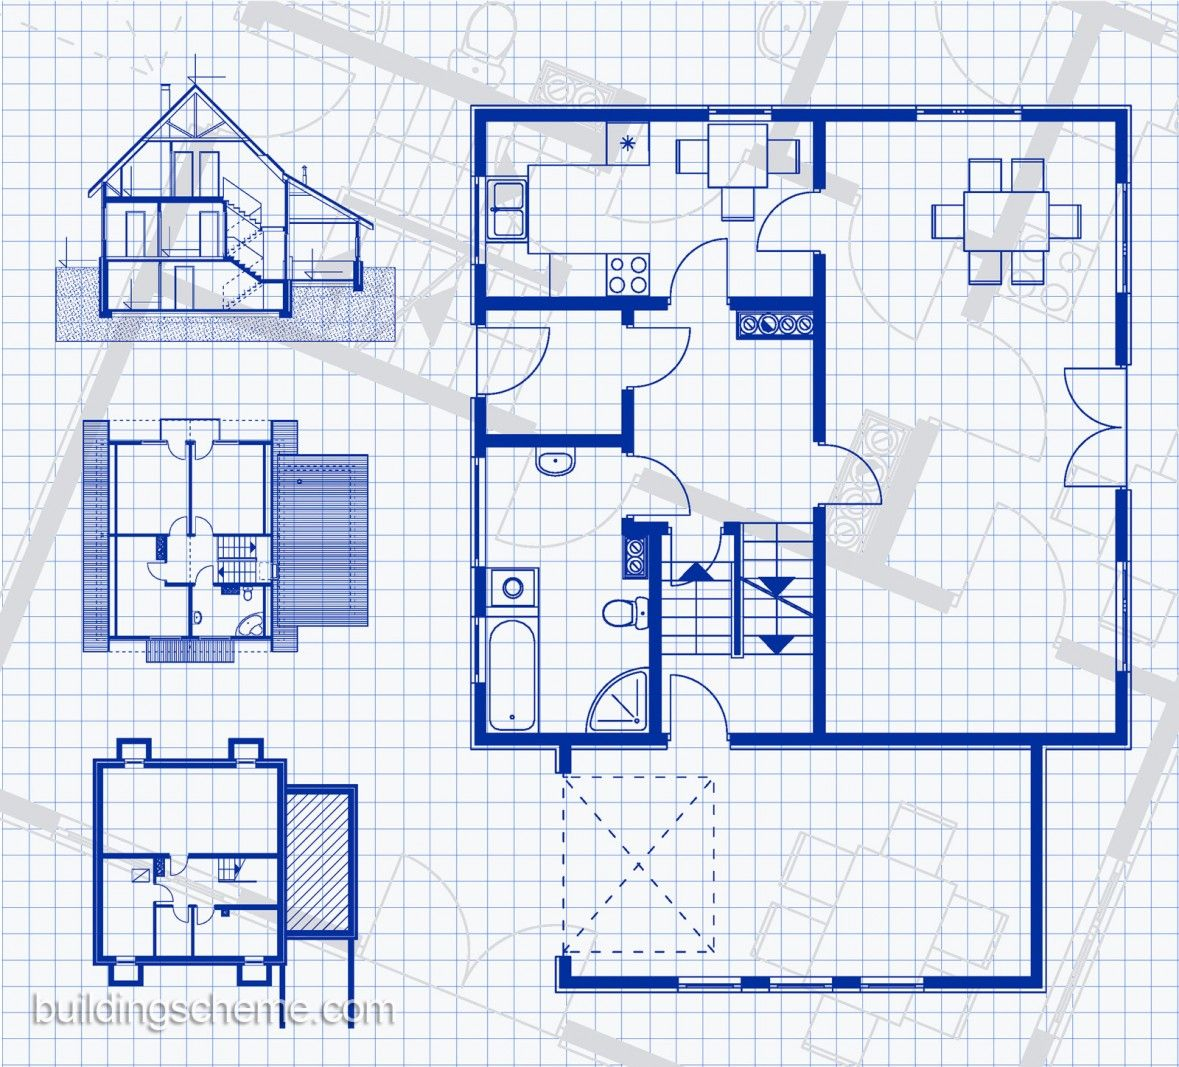 House blueprints with dimensions home plans picture home design house blueprints with dimensions home plans picture home design pinterest malvernweather Images